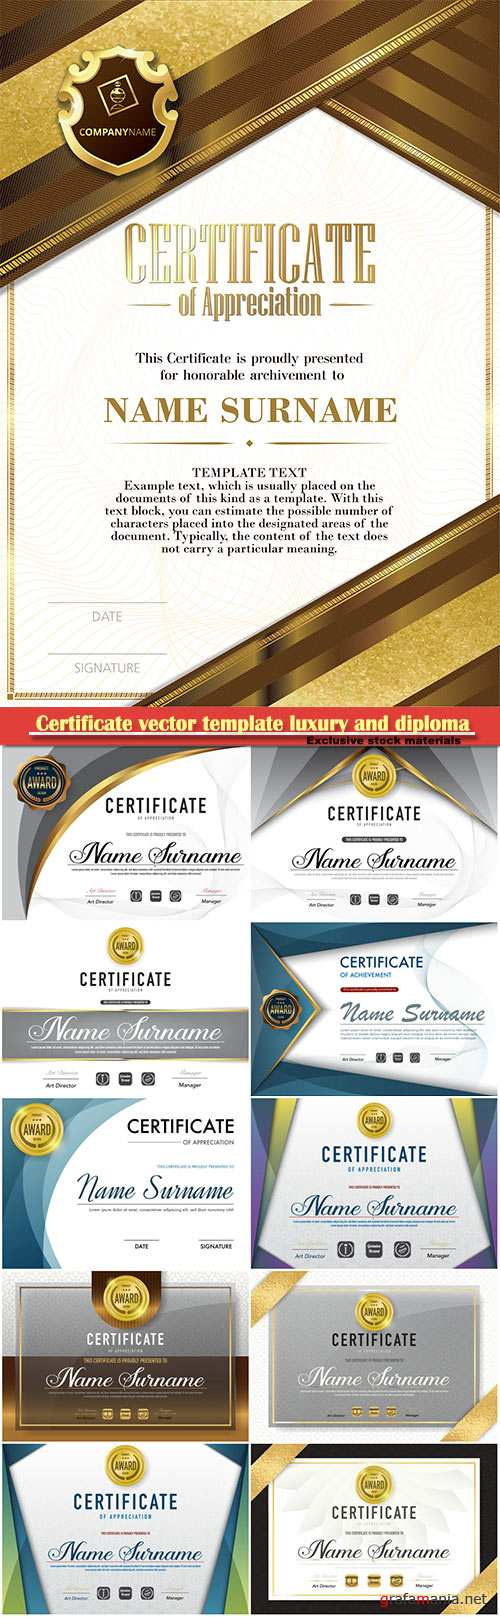 Certificate vector template luxury and diploma style